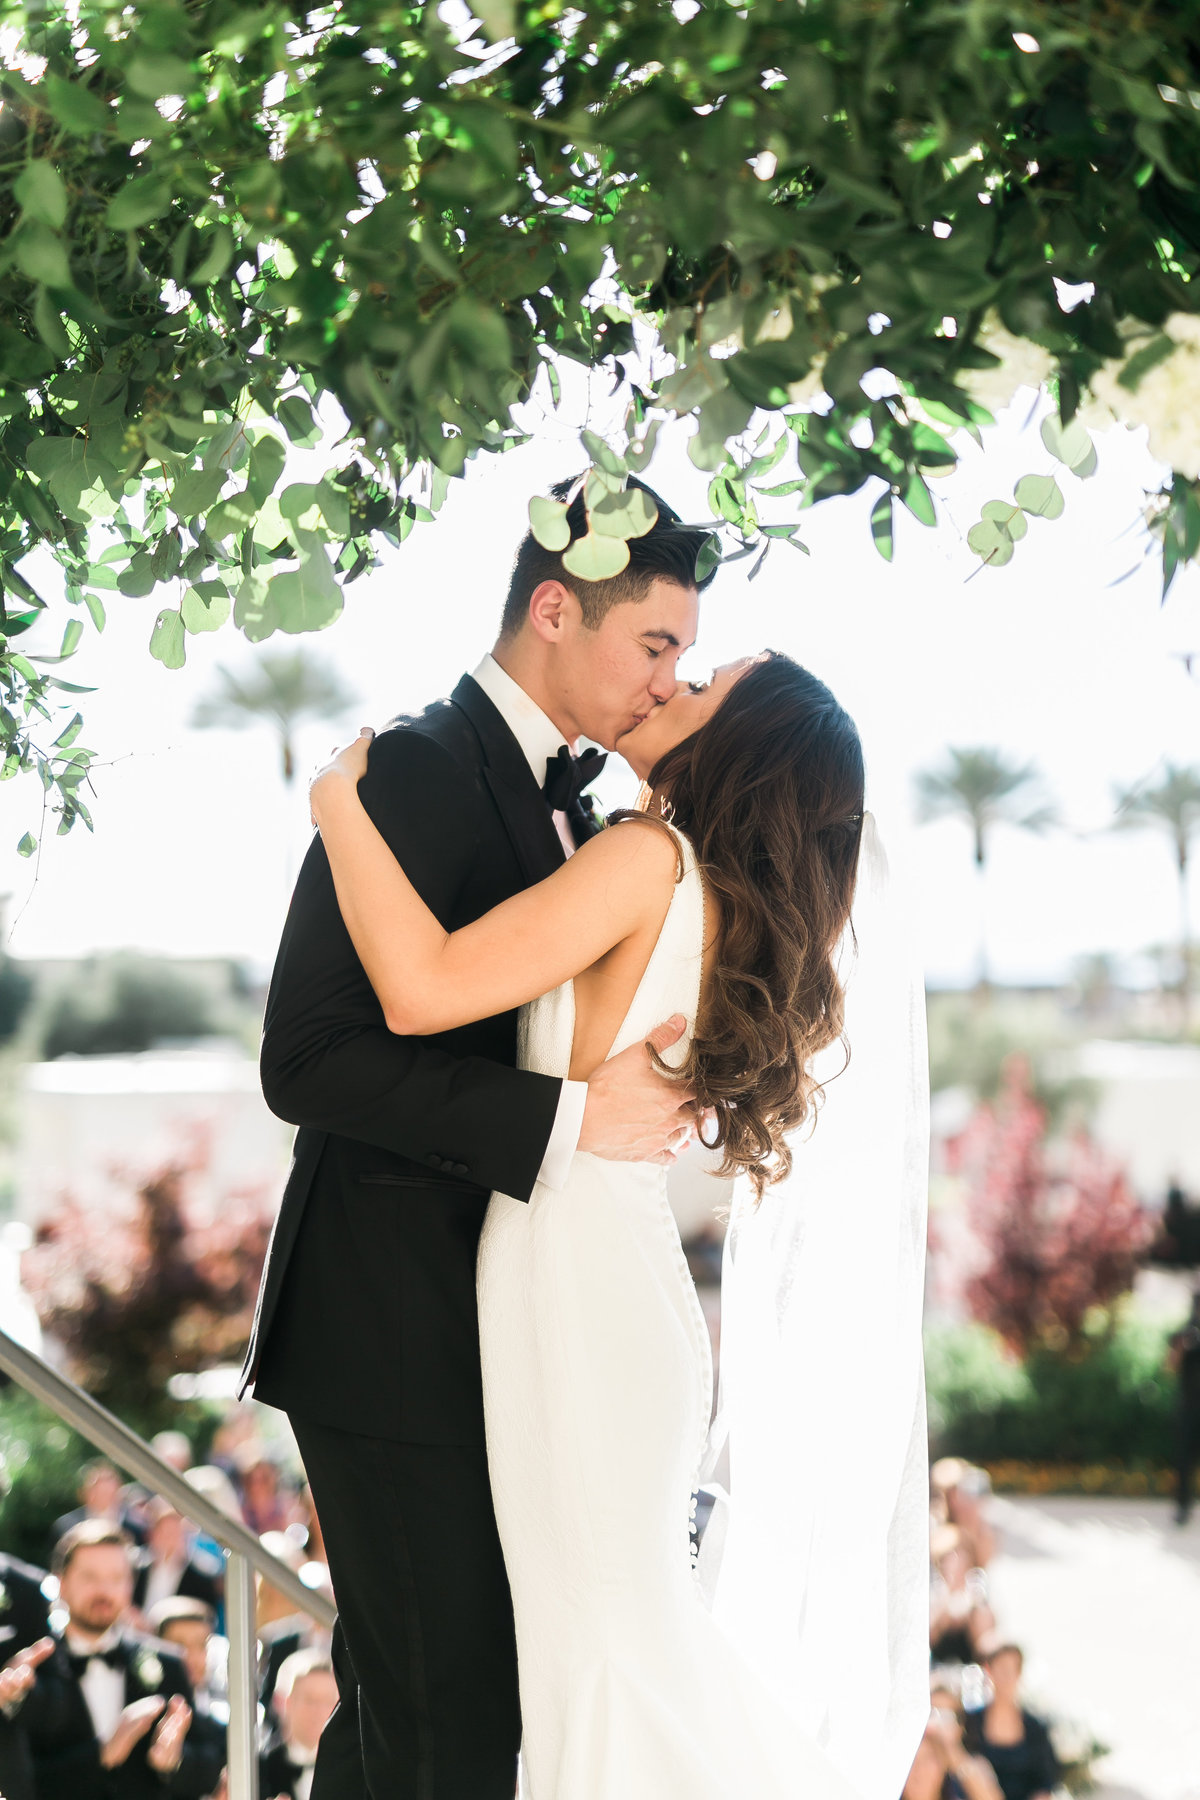 a photo of a bride and groom having their first kiss at their wedding ceremony at Green Valley Ranch Resort and Spa in Las Vegas